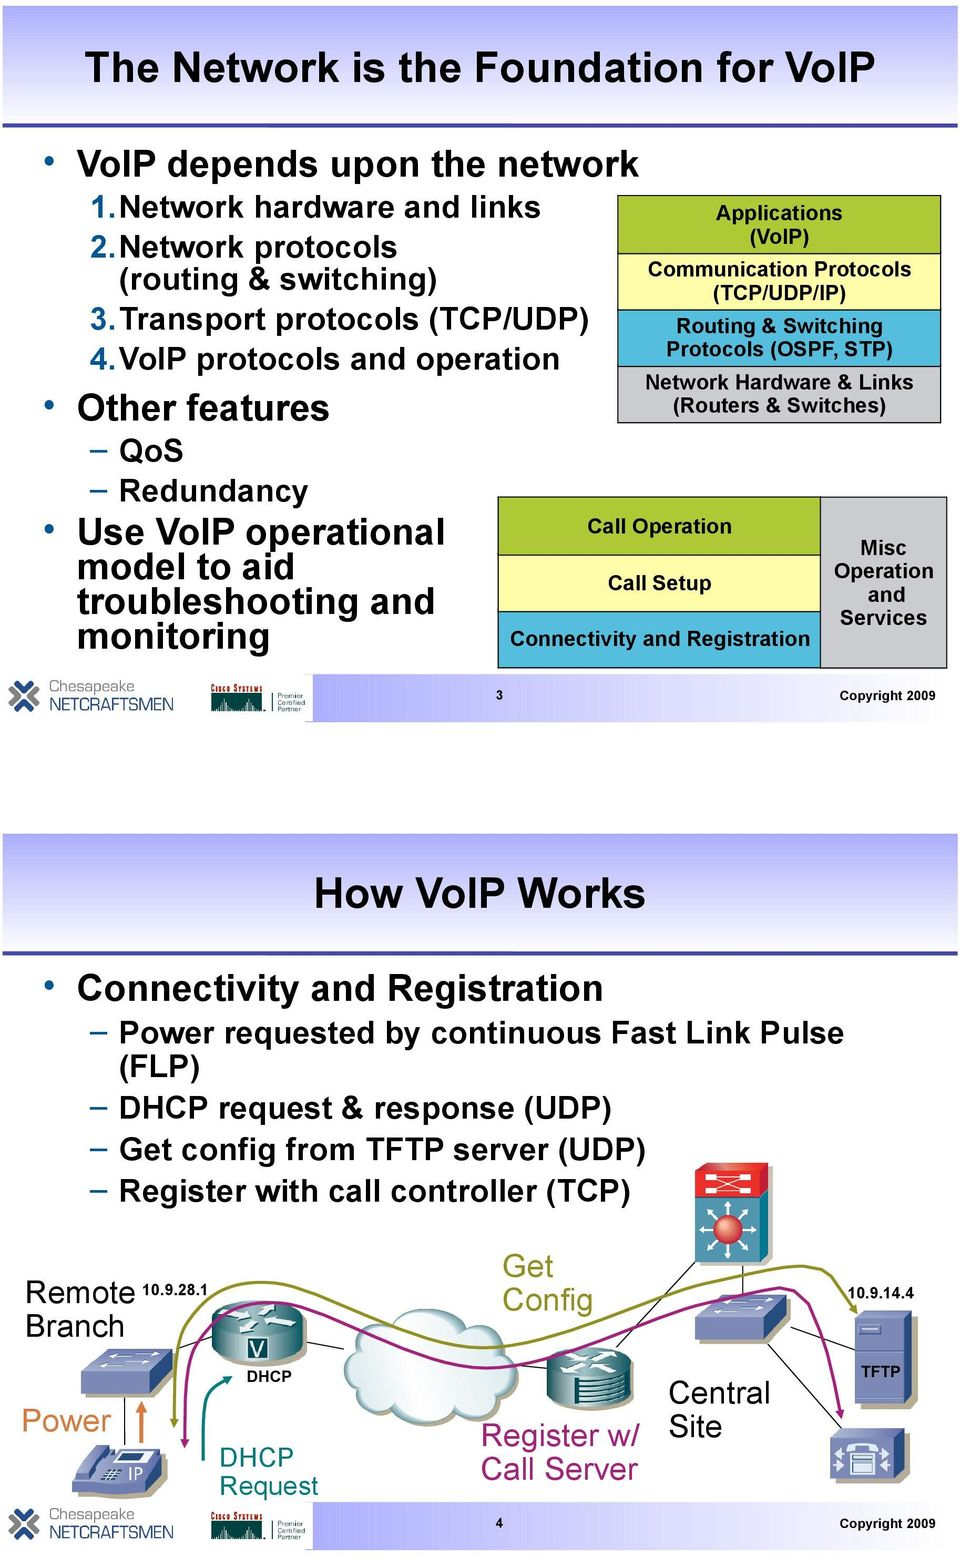 Switches) Call Operation Call Setup Applications (VoIP) Routing & Switching Protocols (OSPF, STP) Connectivity and Registration Misc Operation and Services 3 How VoIP Works Connectivity and